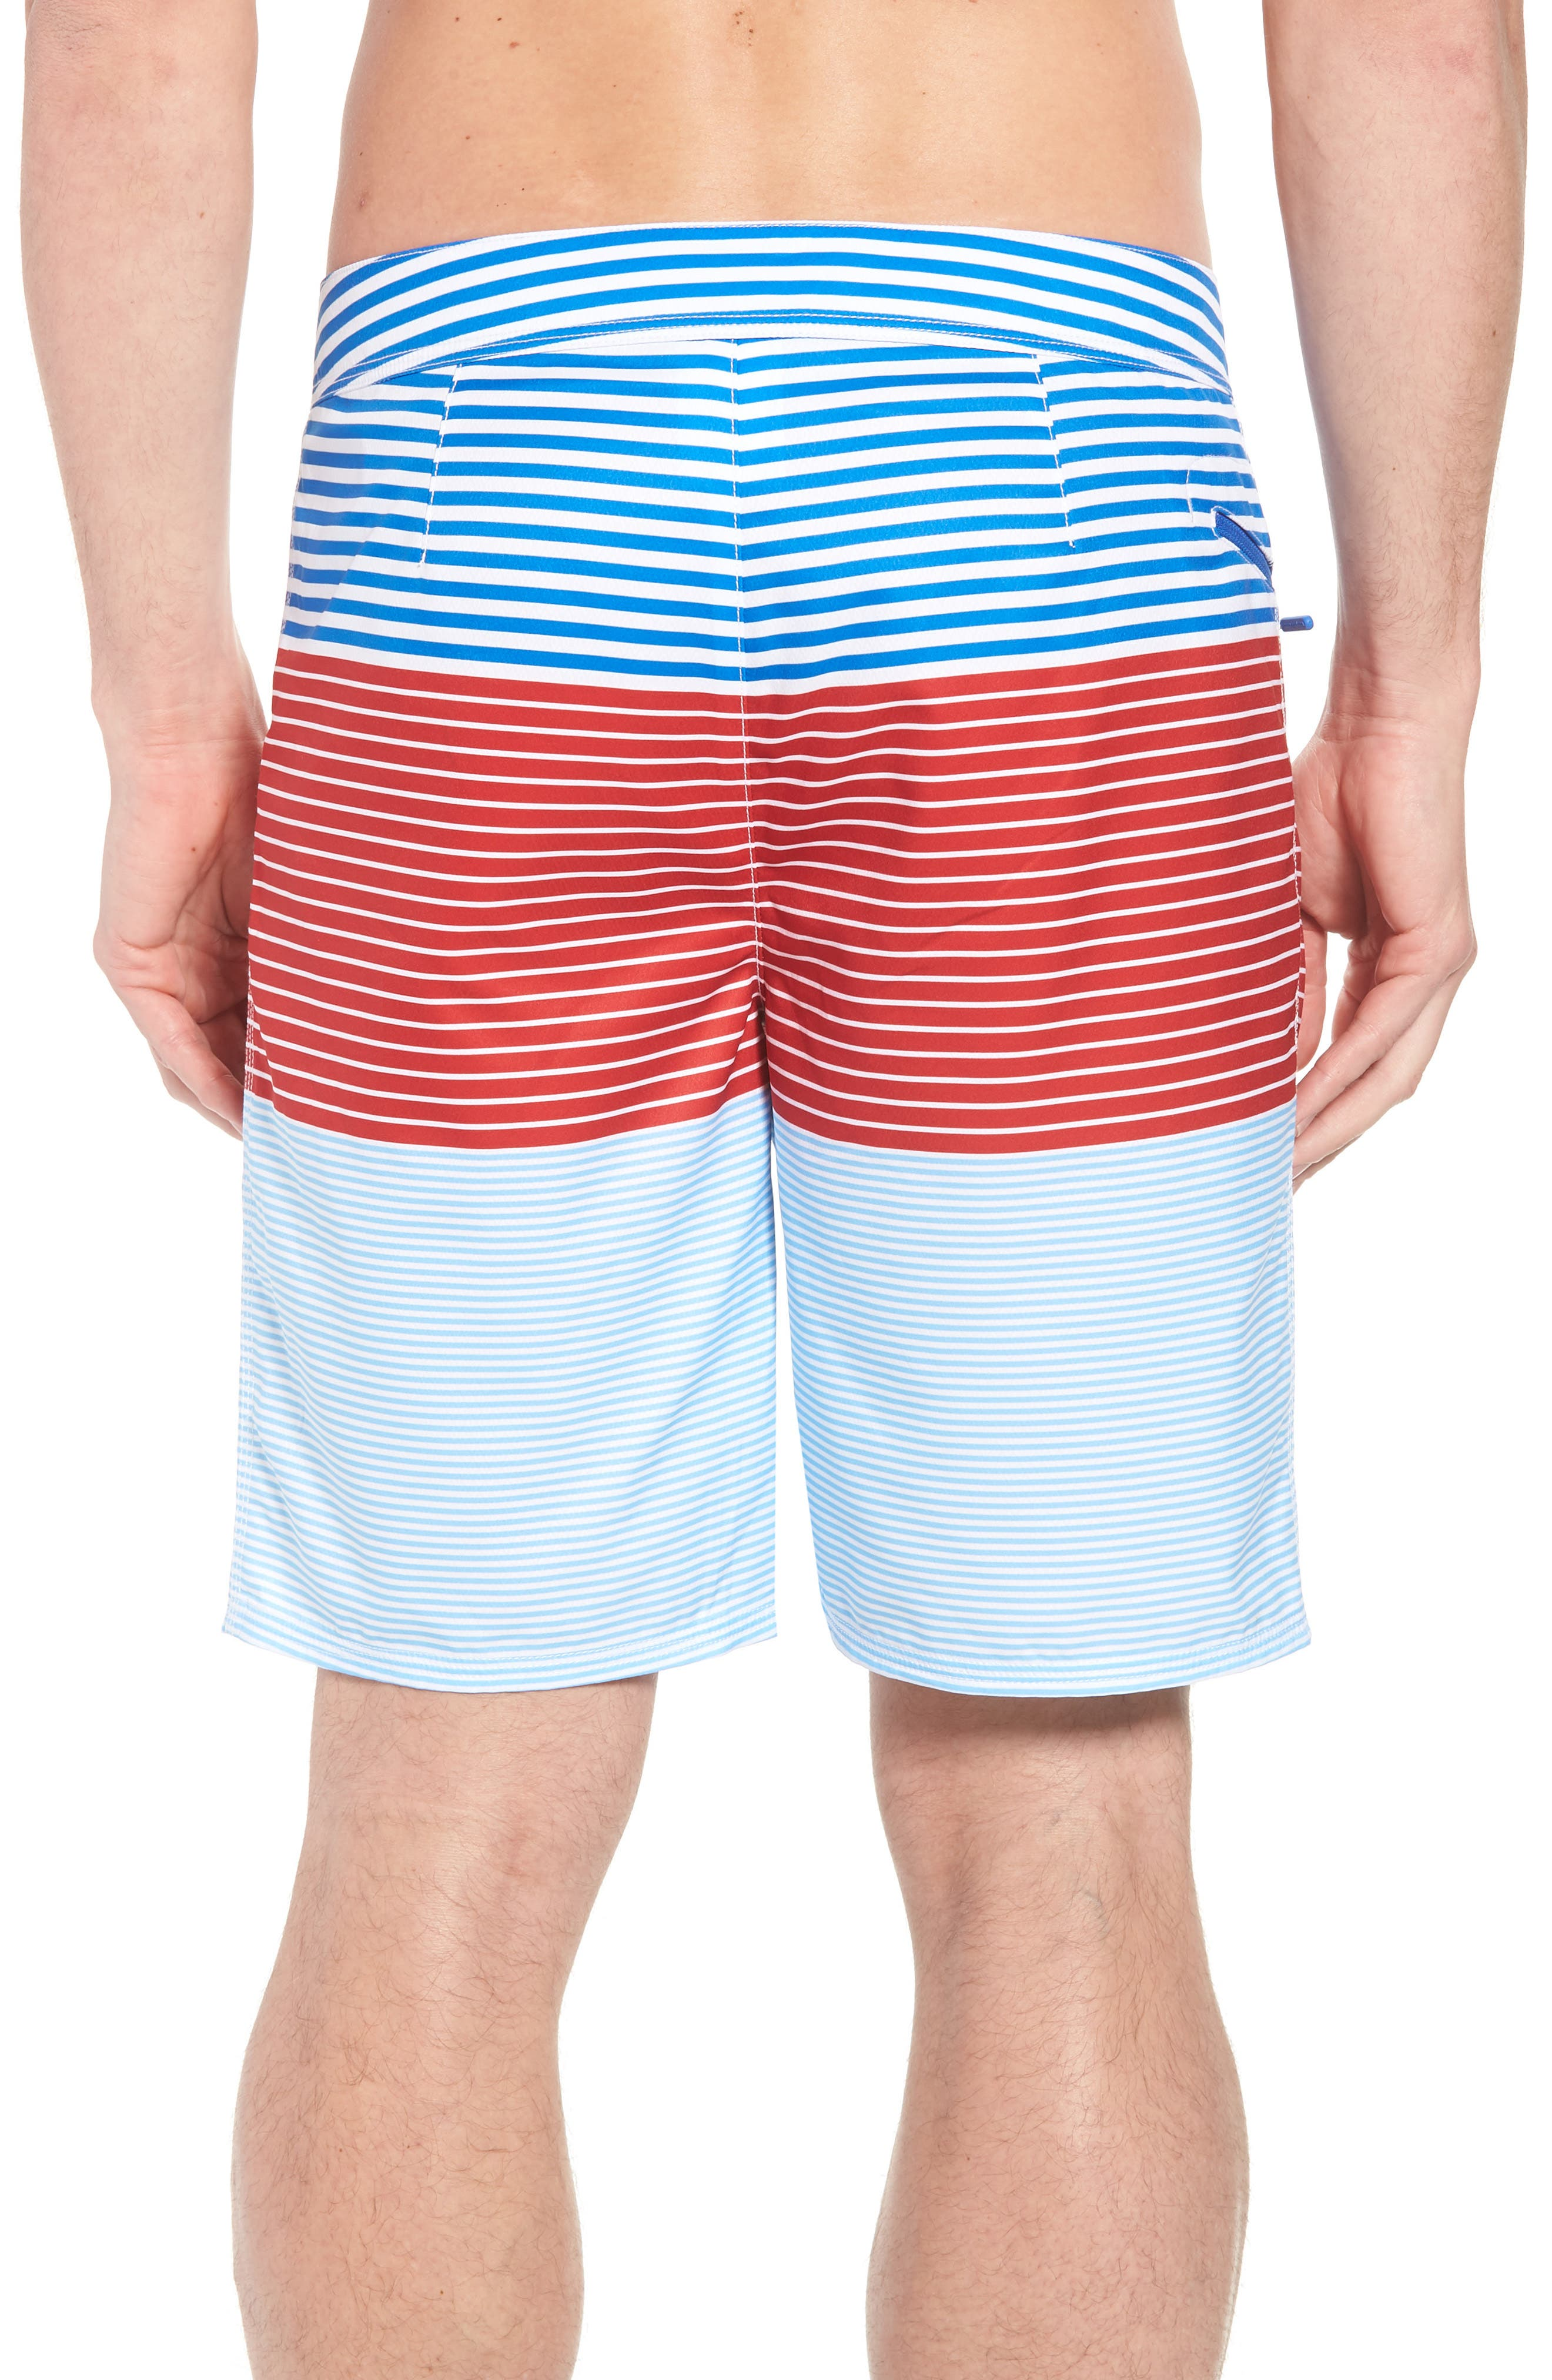 Whale Harbor Stripe Board Shorts,                             Alternate thumbnail 2, color,                             427